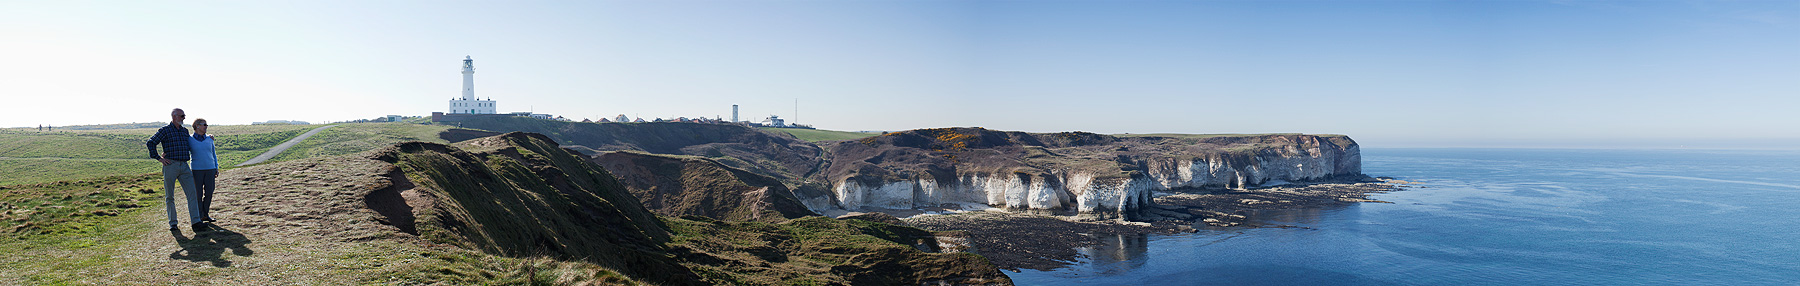 East Yorkshire coastline